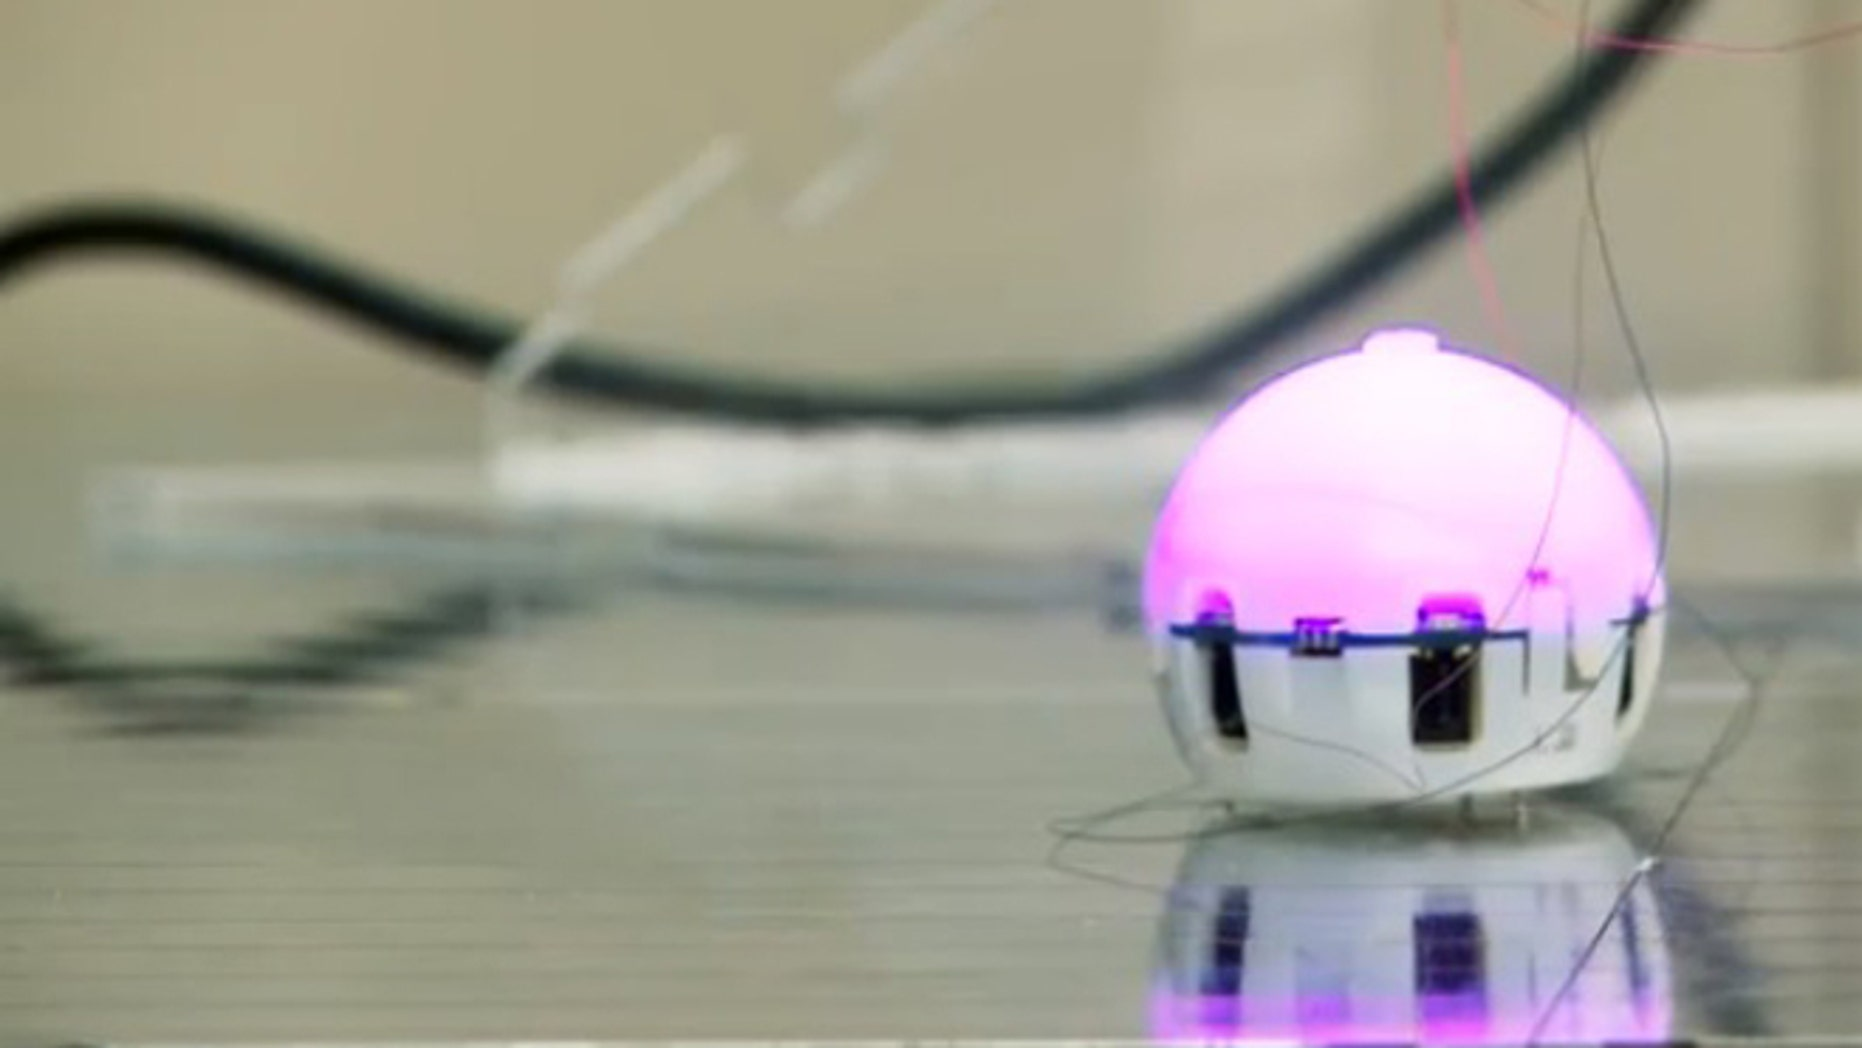 A ping-pong ball sized robot, designed to join with its mates and self-assemble.